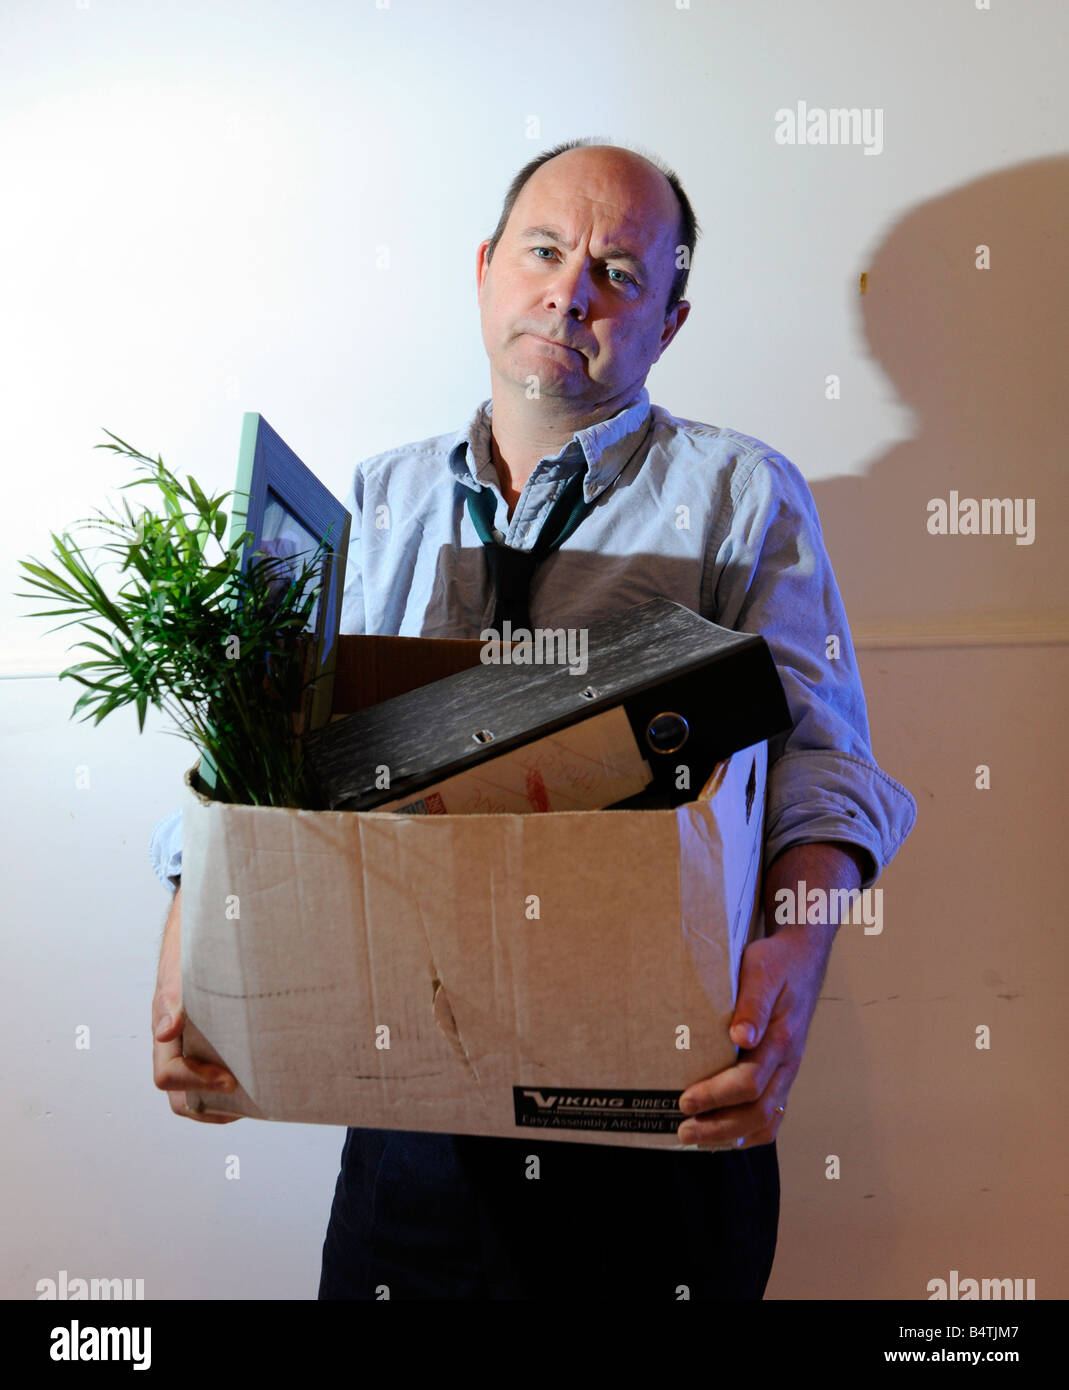 Man packs up and leaves the office after losing his job, being made redundant, being fired - Stock Image